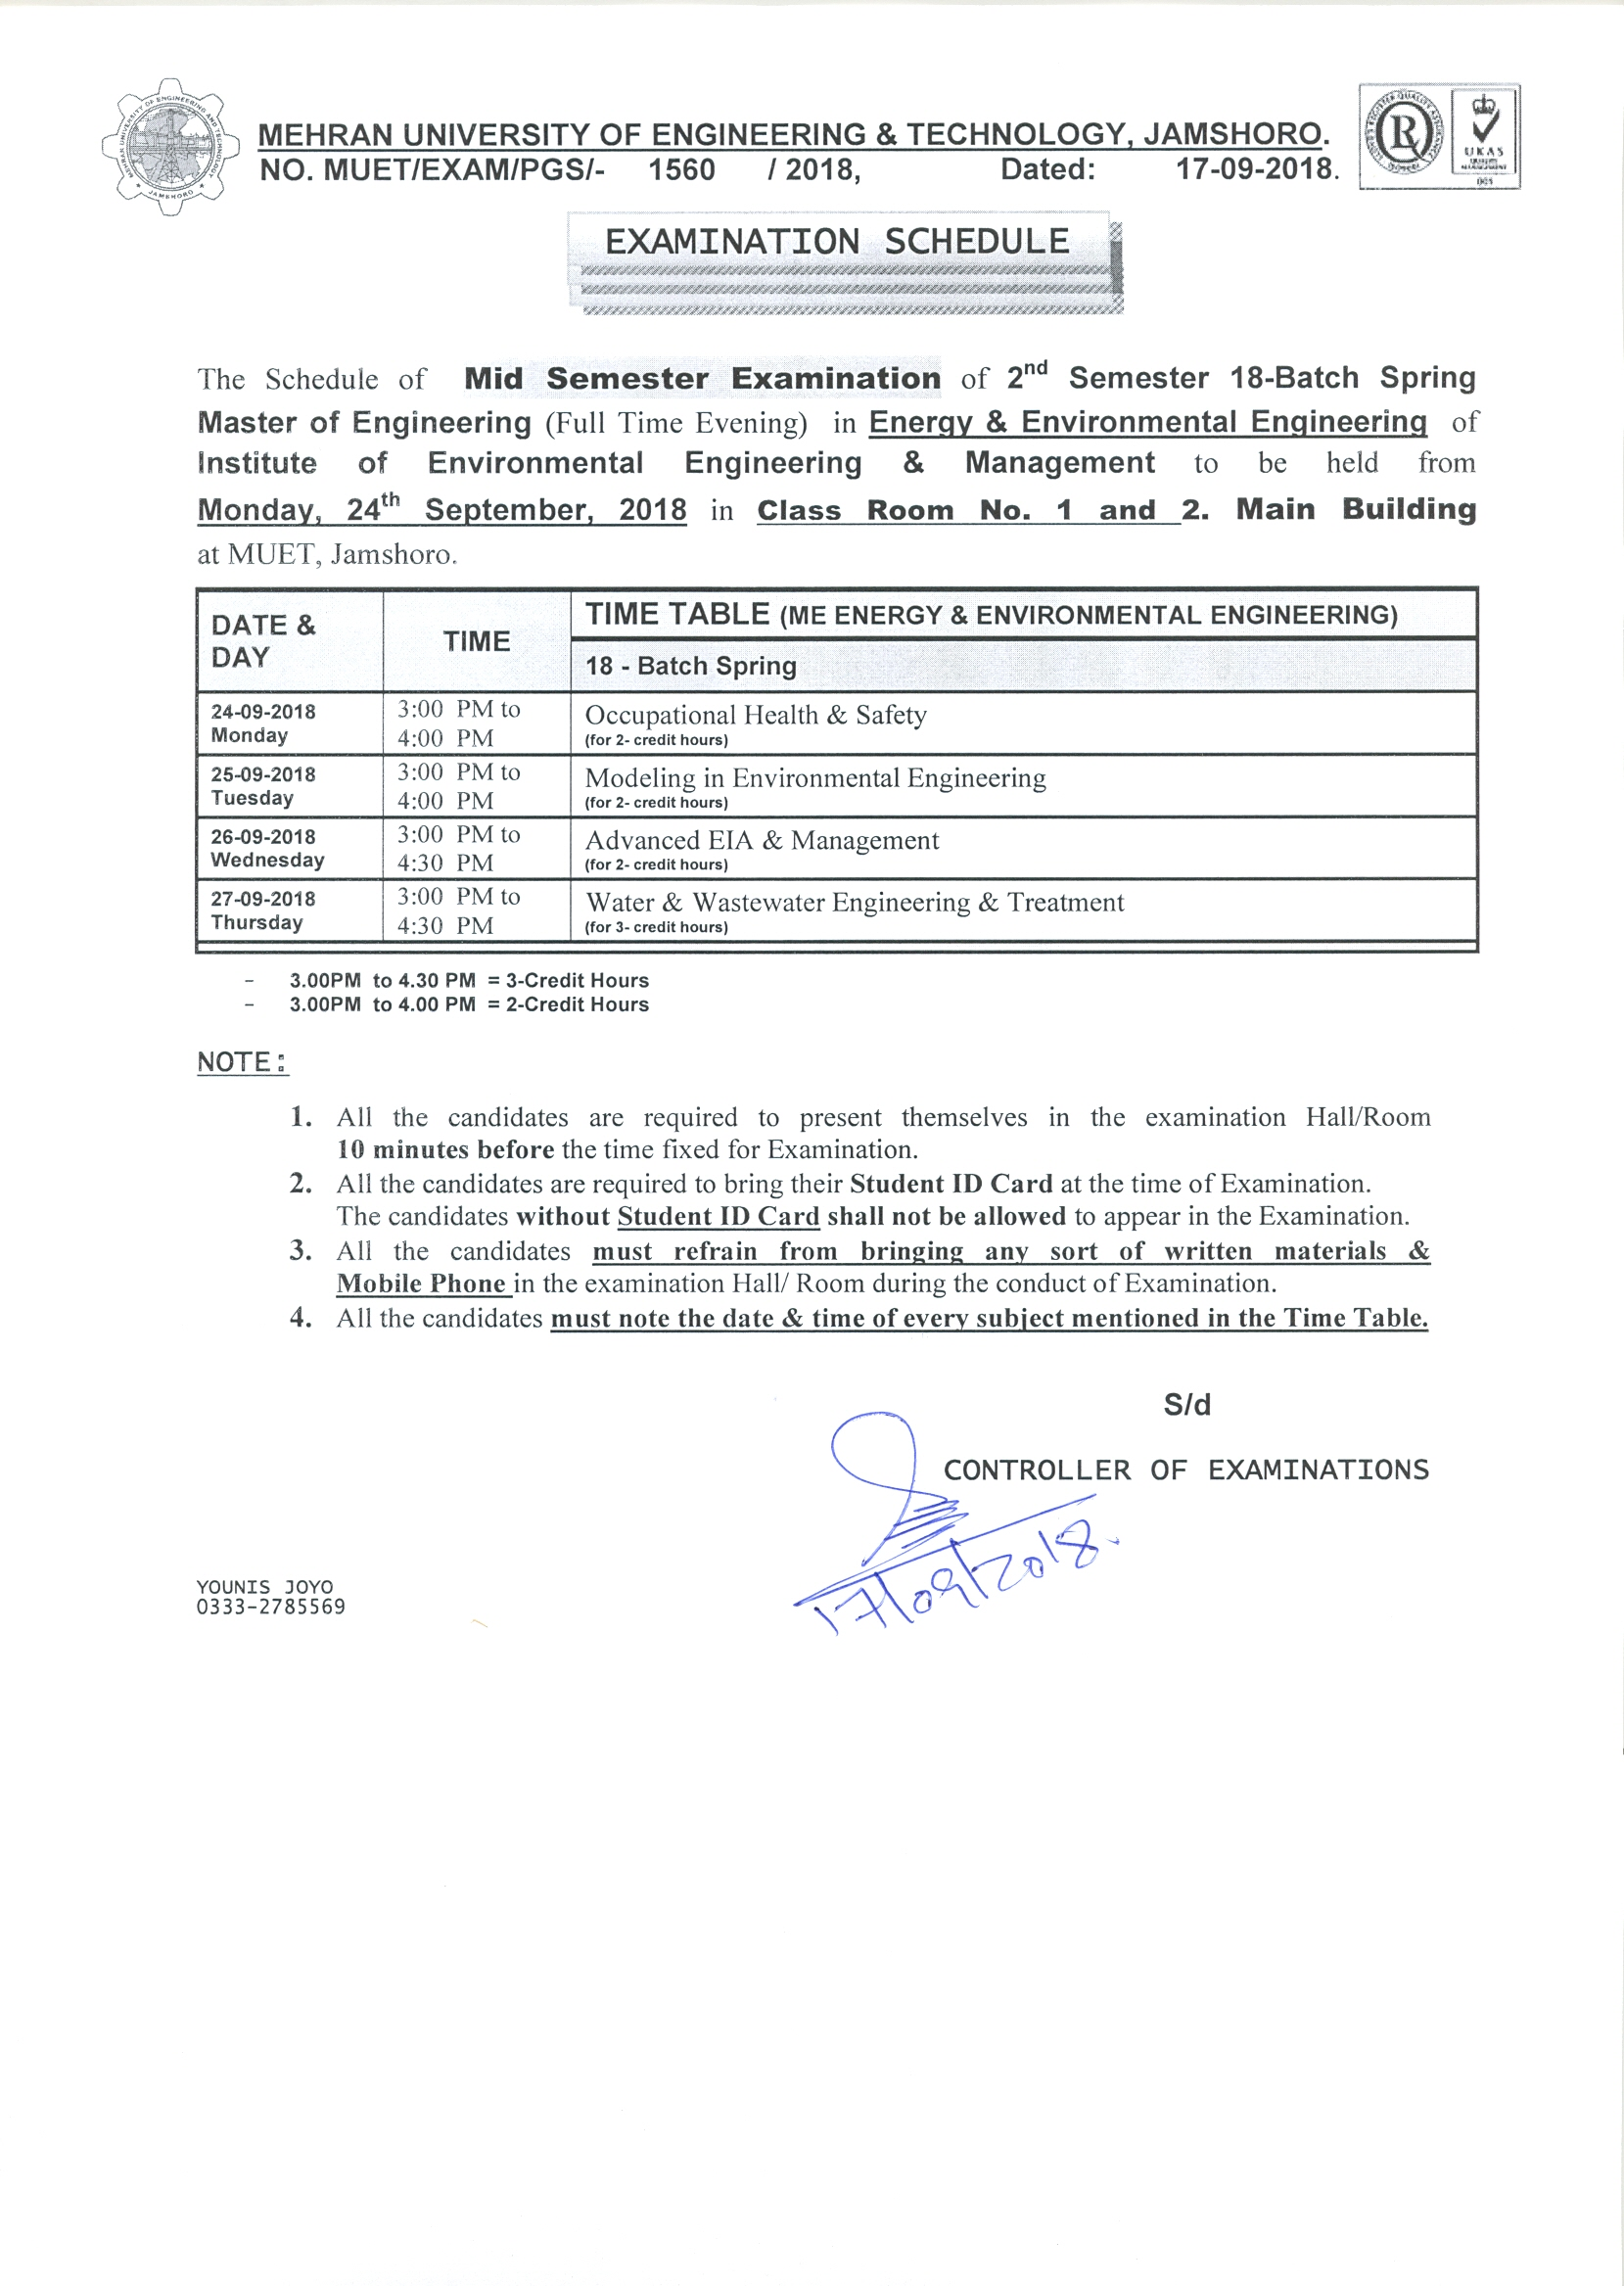 MID Semester Schedule/Time table for 18-Batch Post-graduate | Mehran